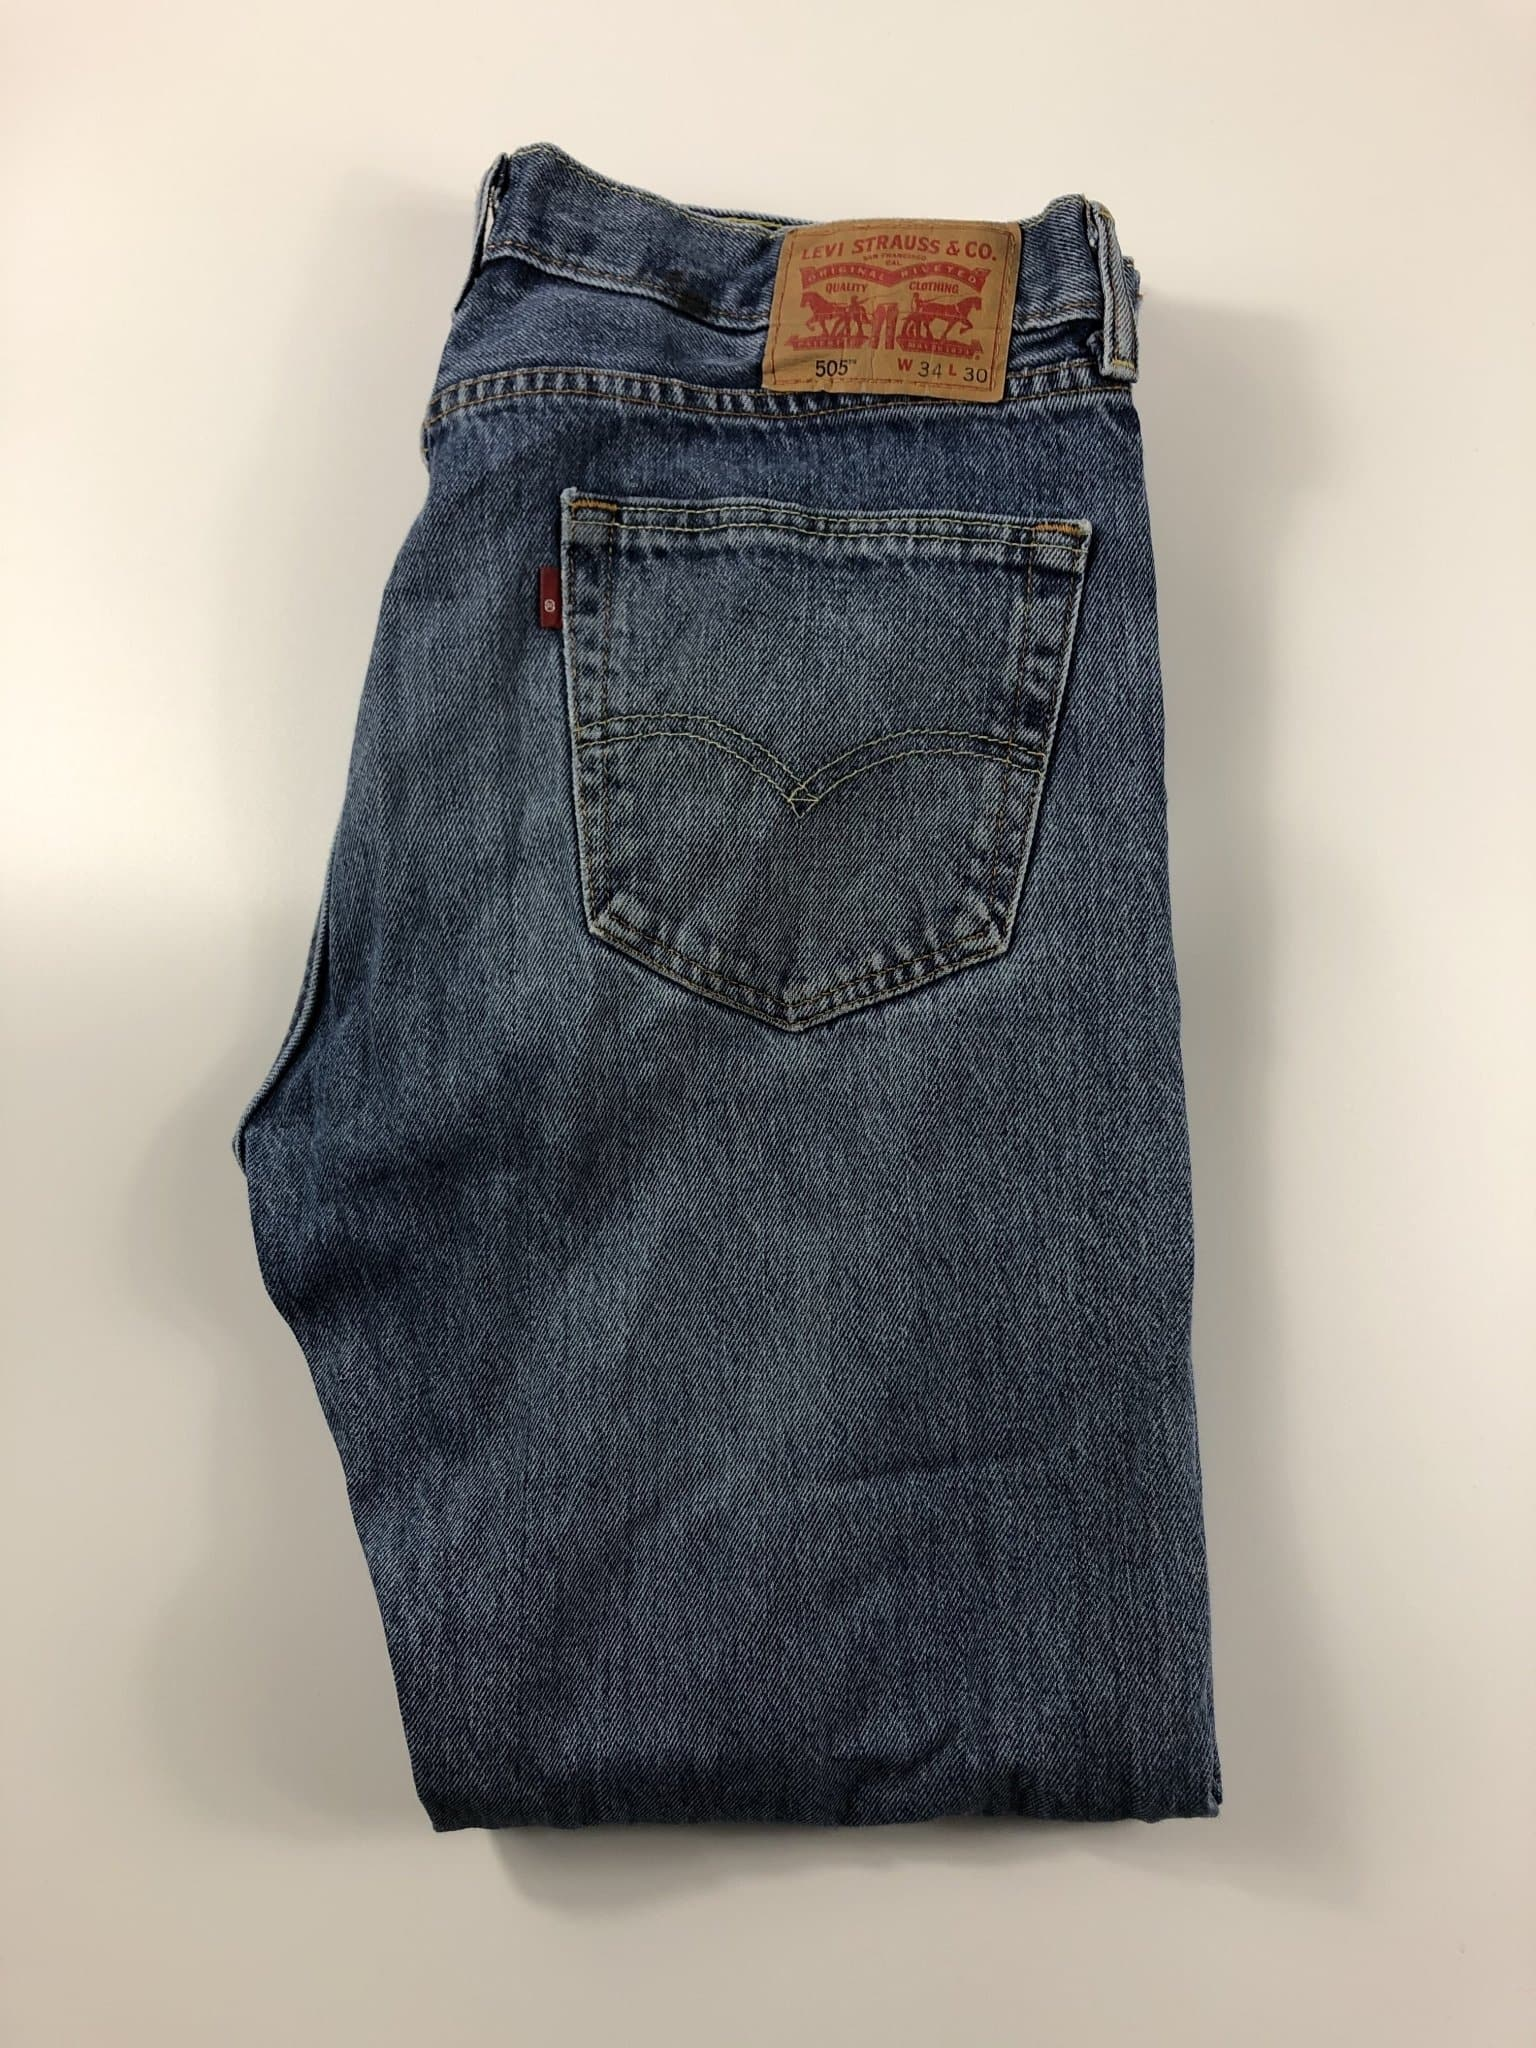 Vintage Levi's Classic 505 Jeans W34 L30 (K5) - Discounted Deals UK